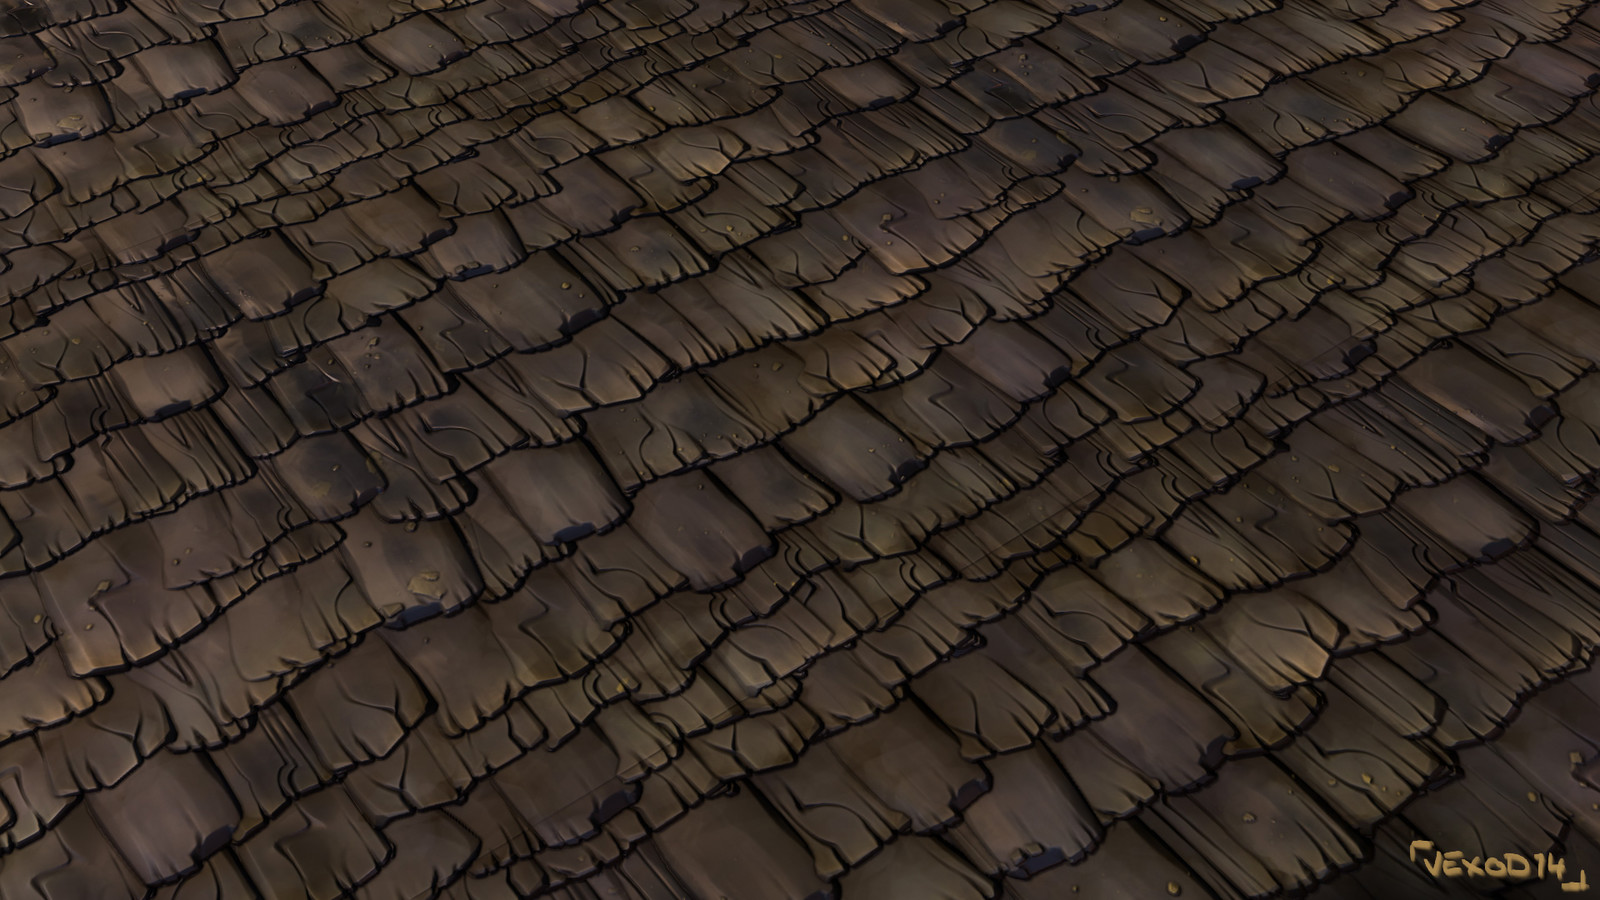 Tileable texture of rooftiles